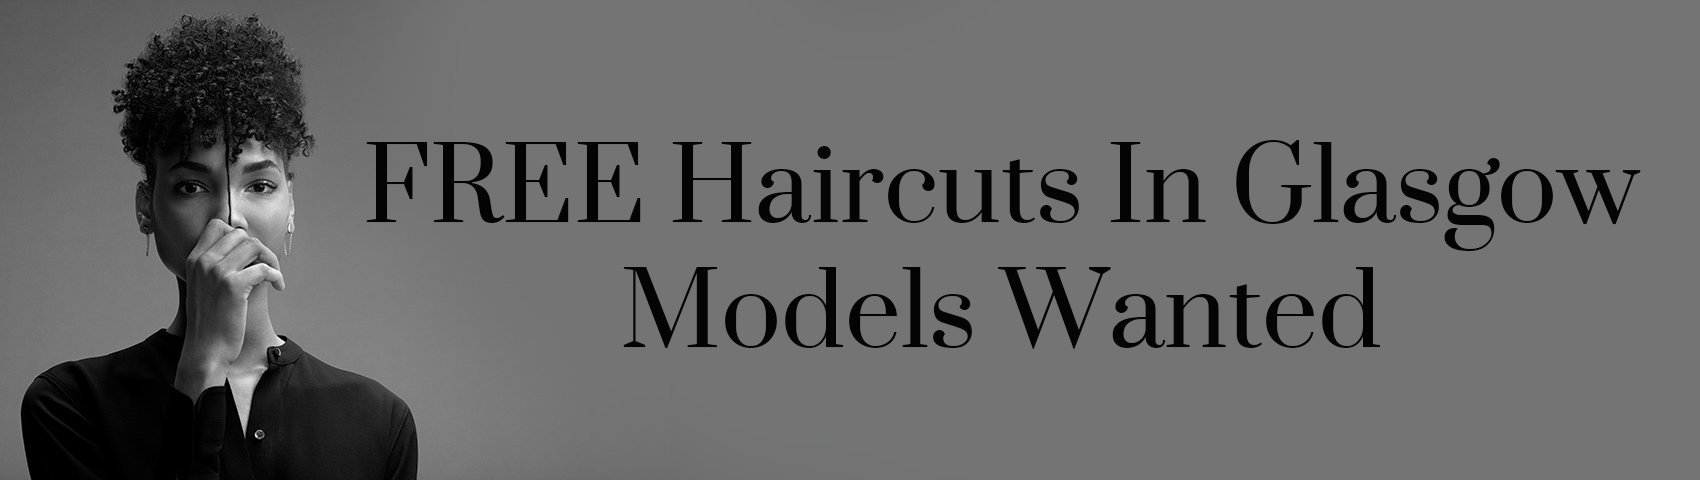 FREE Haircuts In Glasgow Models Wanted BANNER